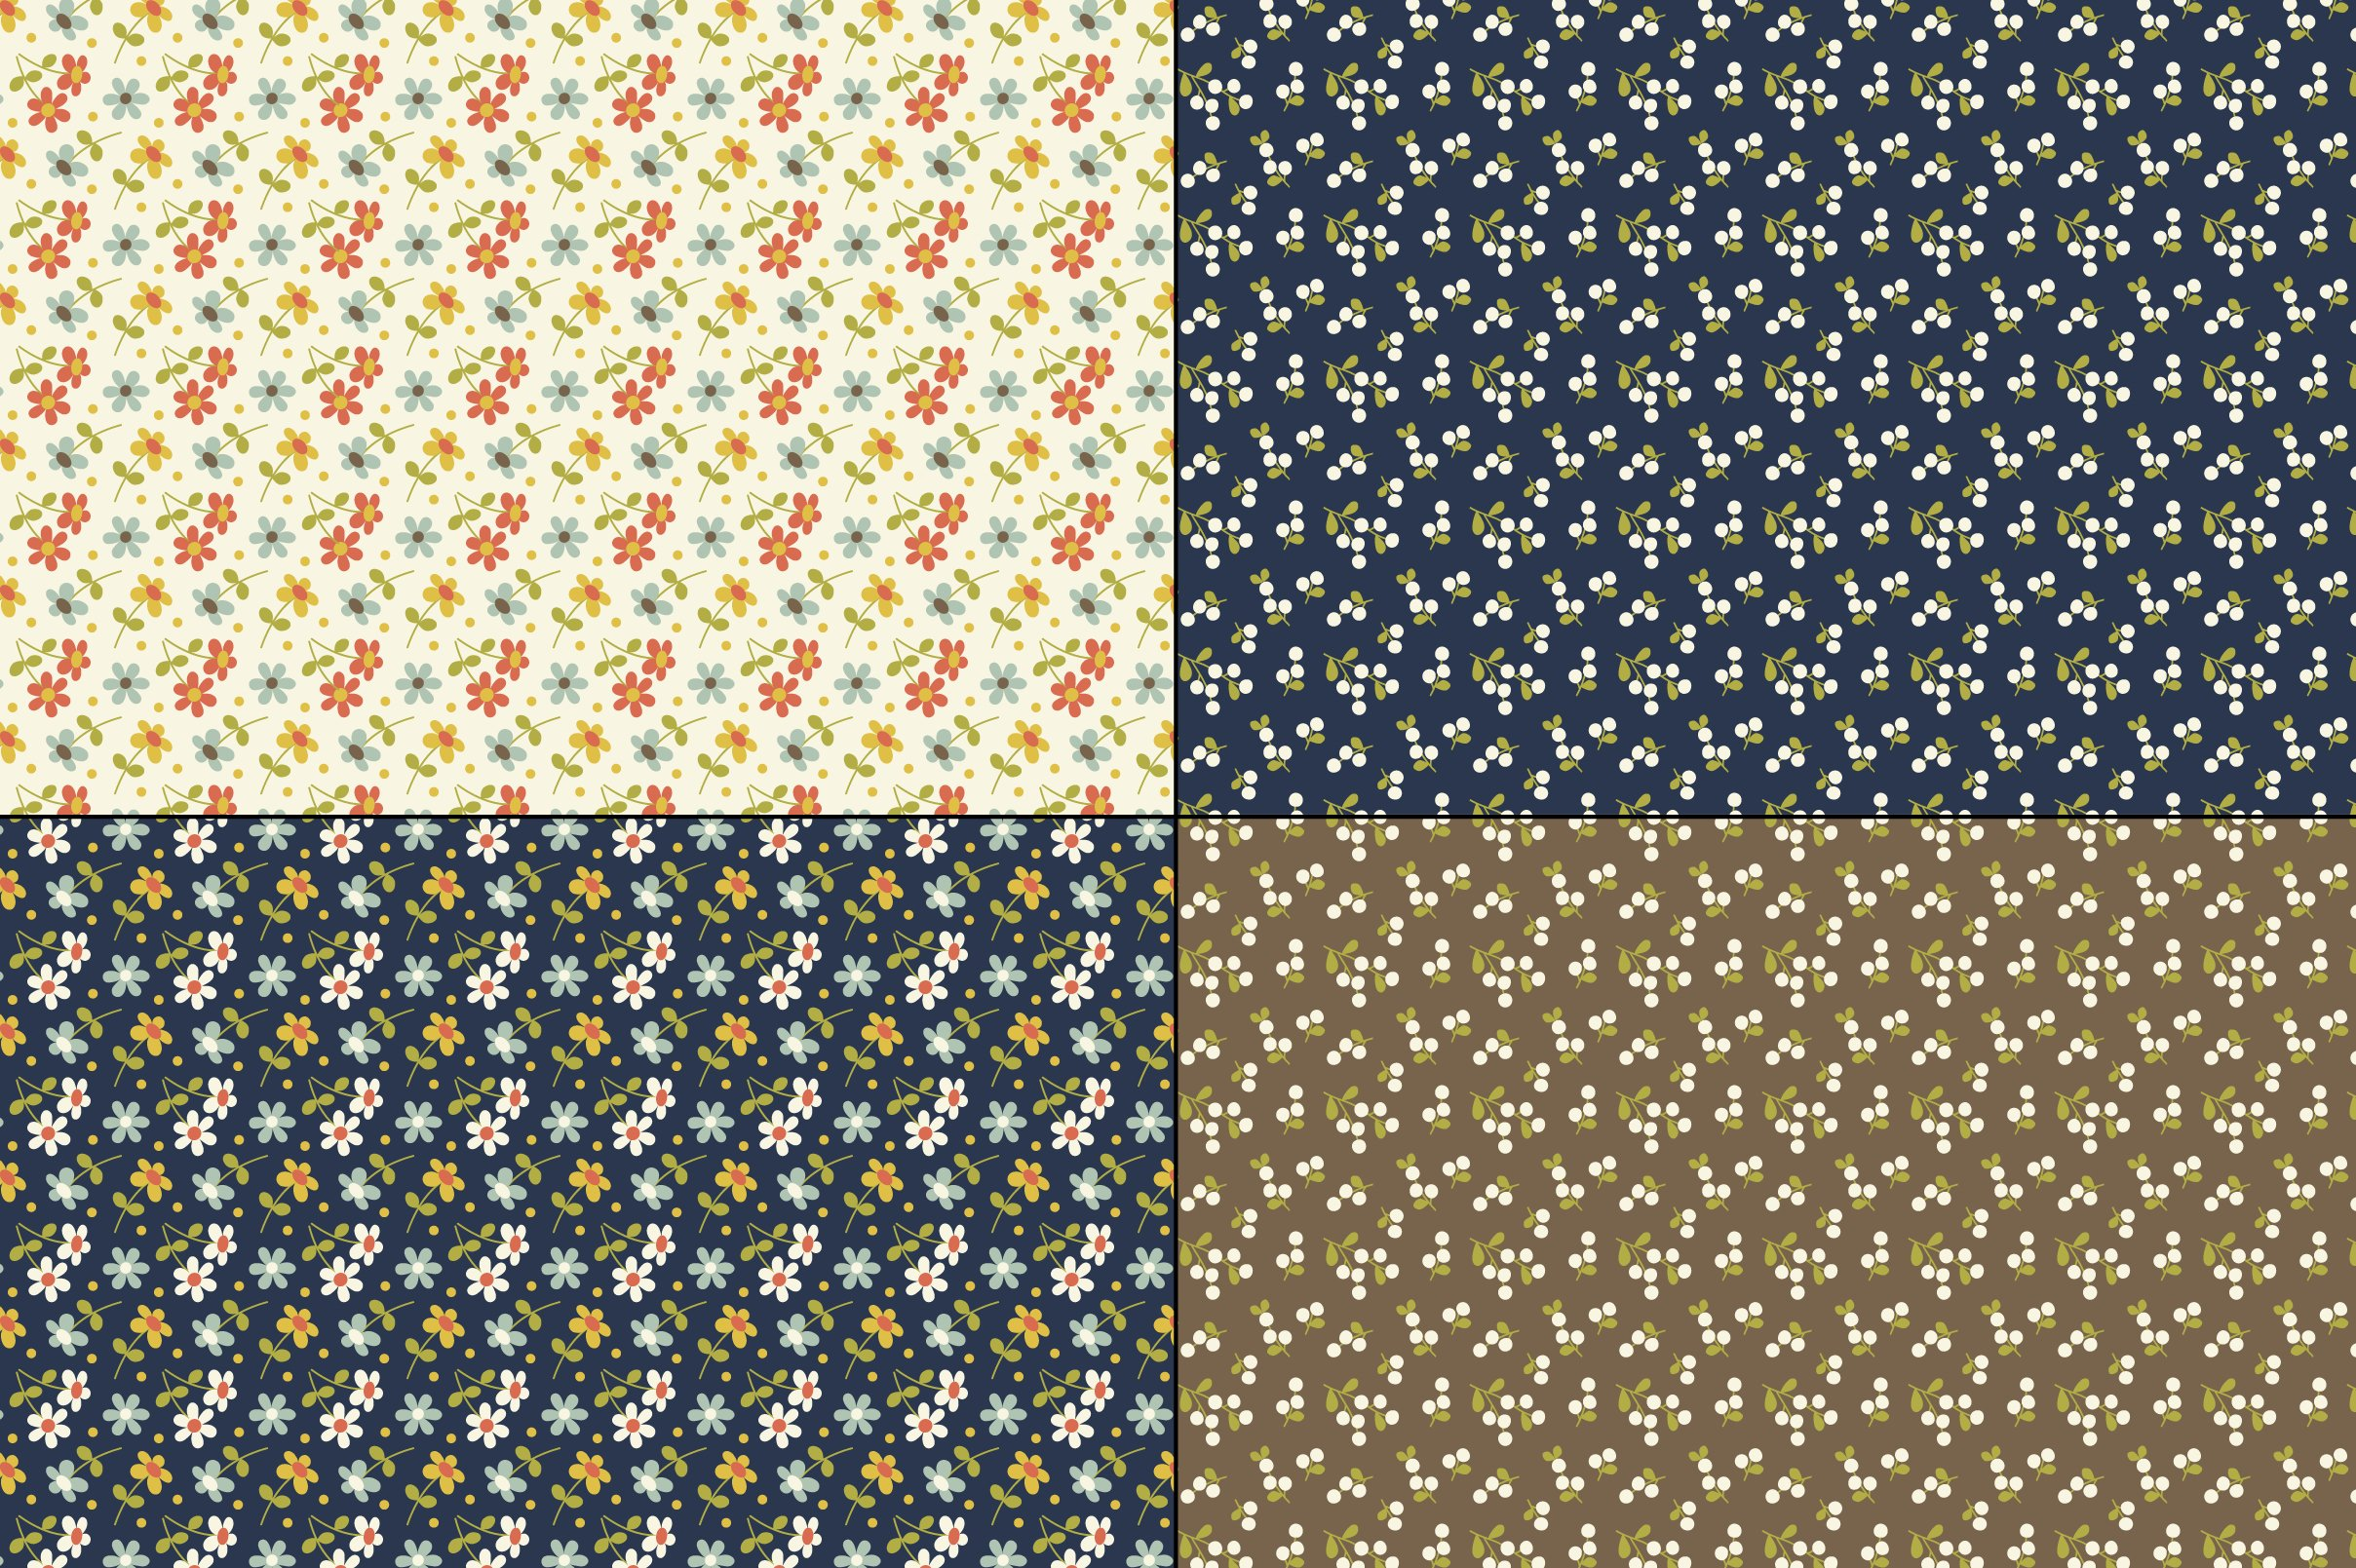 Seamless Retro Floral & Geometric Patterns example image 5